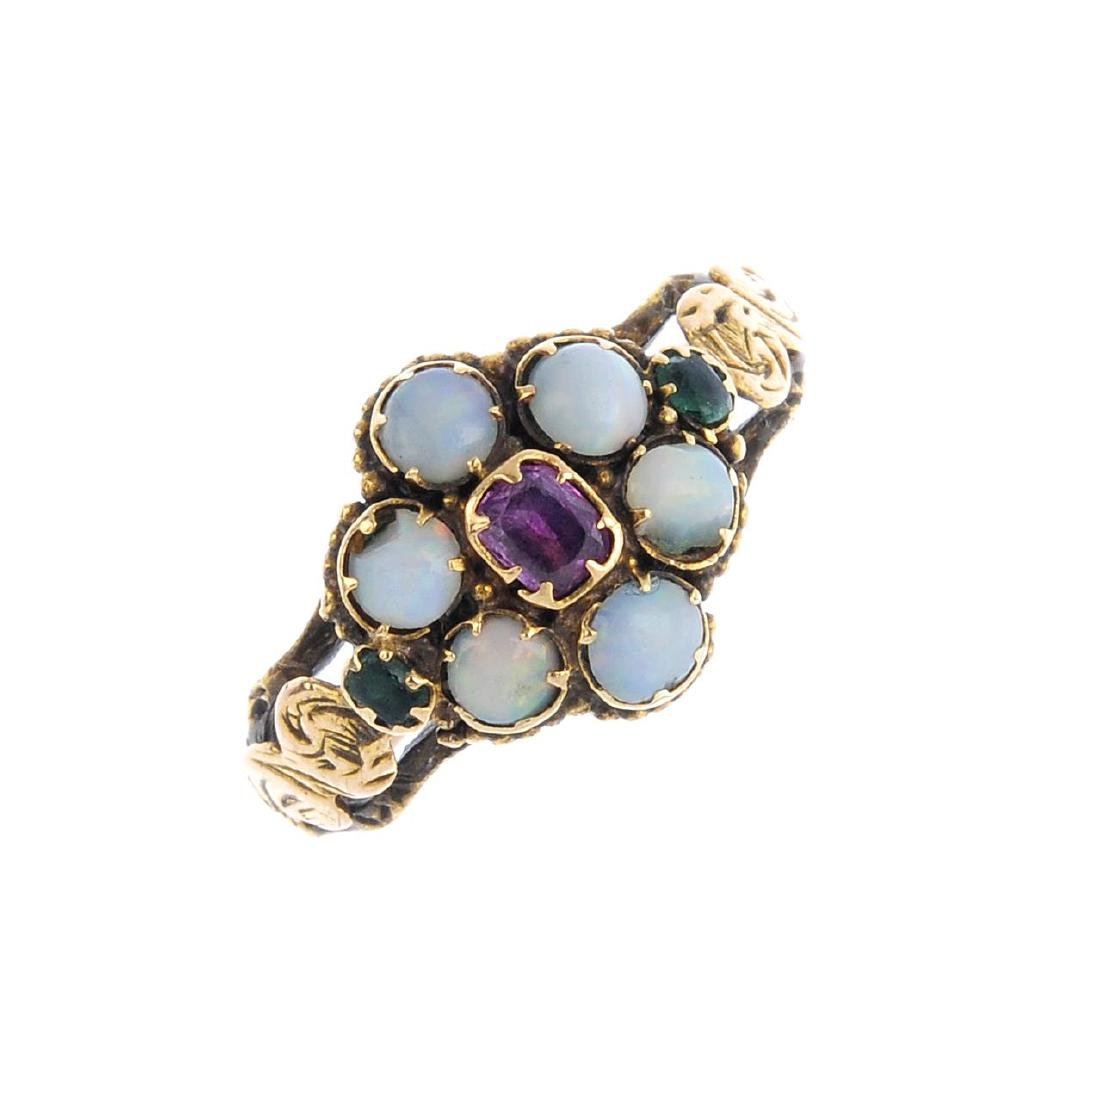 Two gem-set rings. To include a mid Victorian memorial